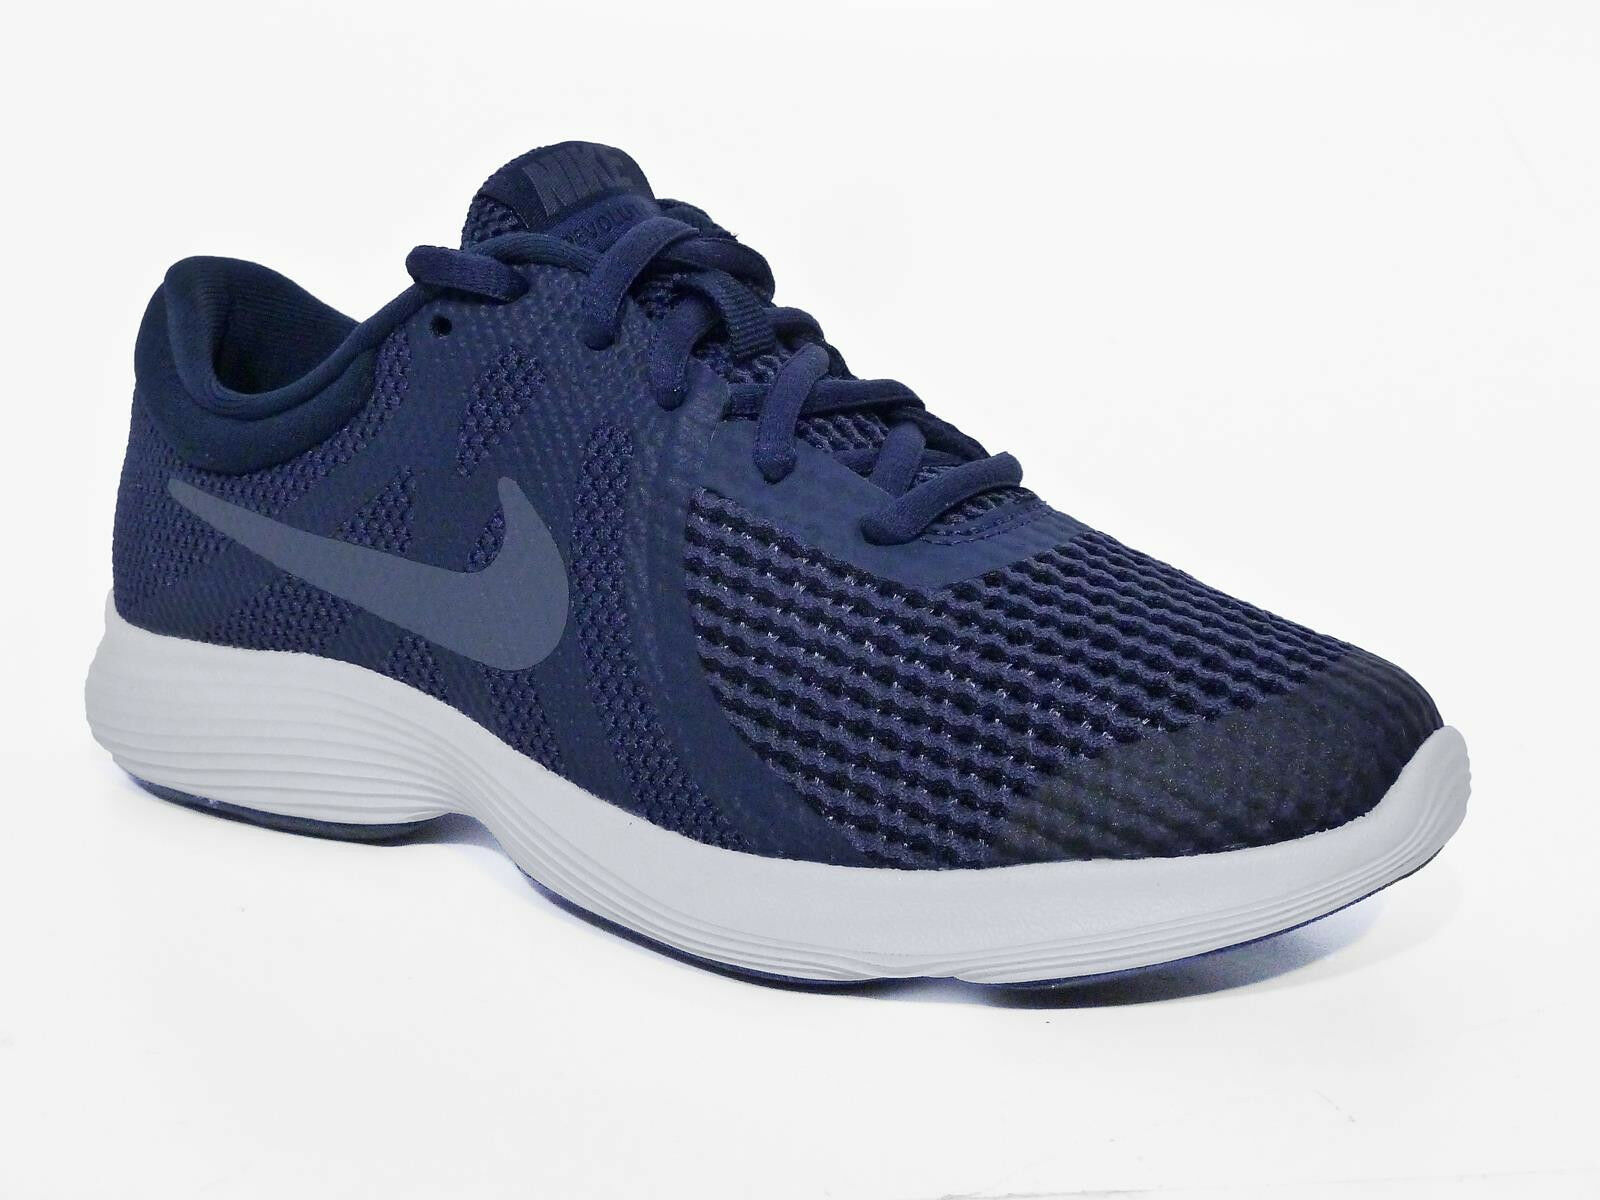 100% authentic 6876f 5c830 Nike Revolution 4 (GS) 0 38.5 mujer   eBay